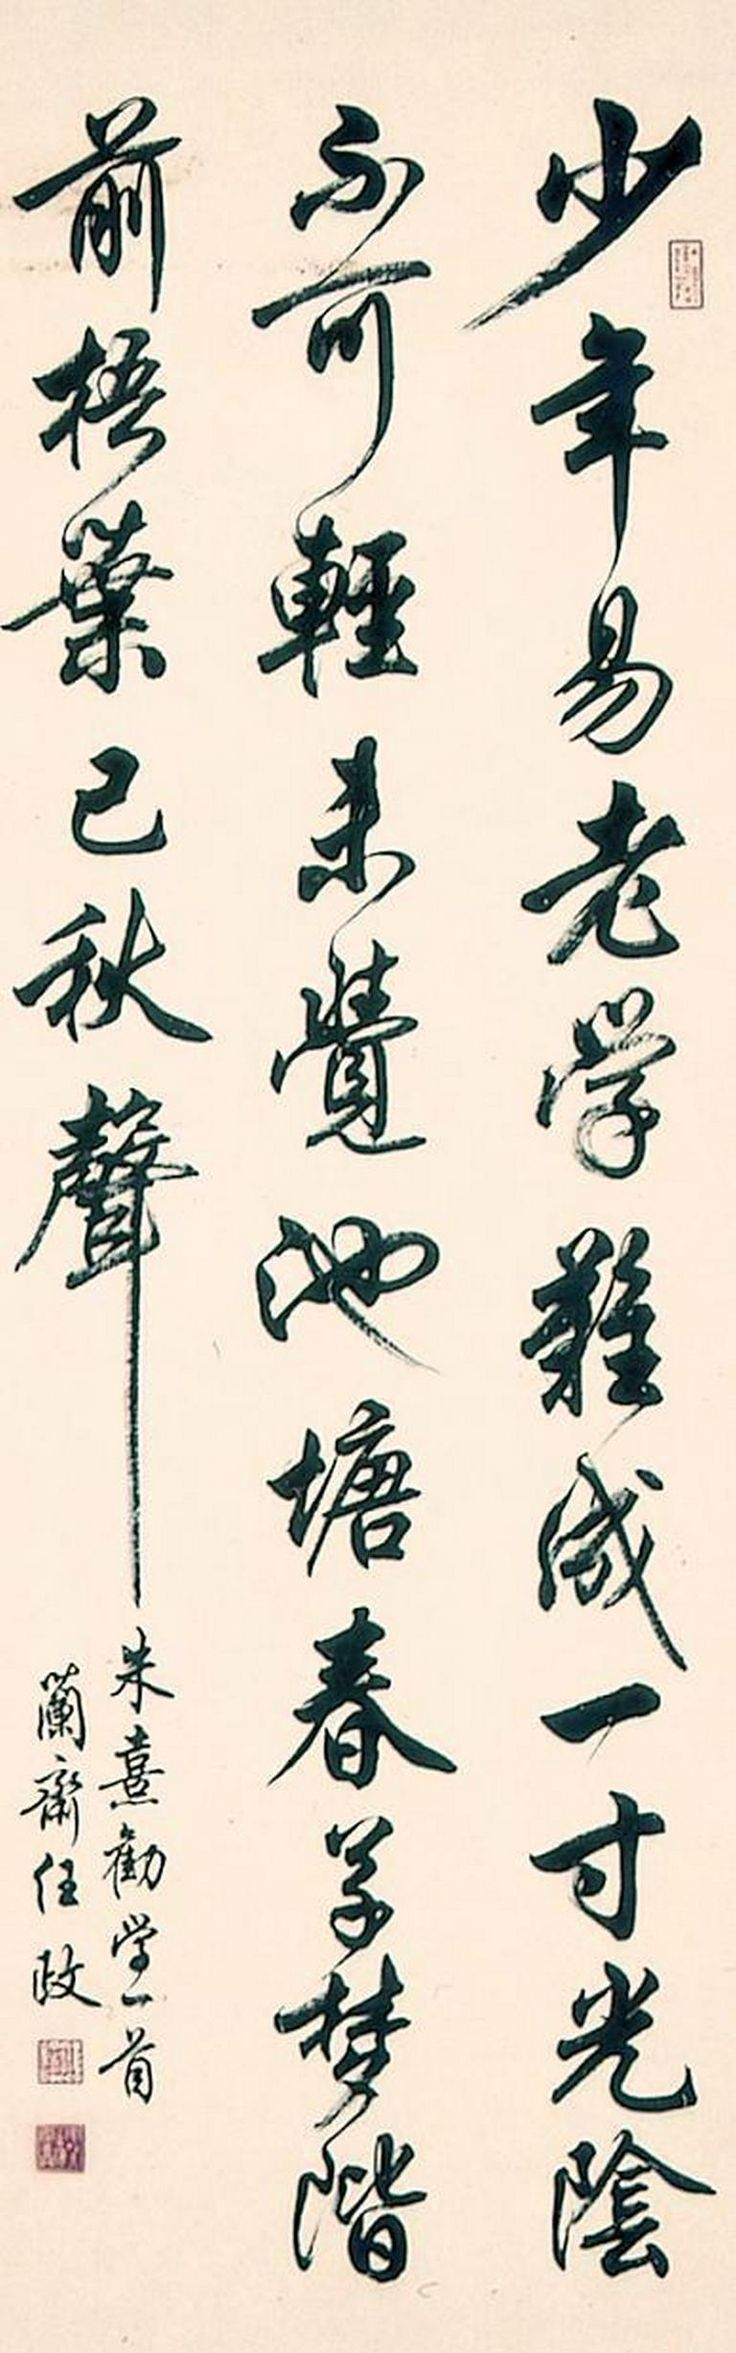 Best 25 Chinese Calligraphy Ideas On Pinterest Japanese